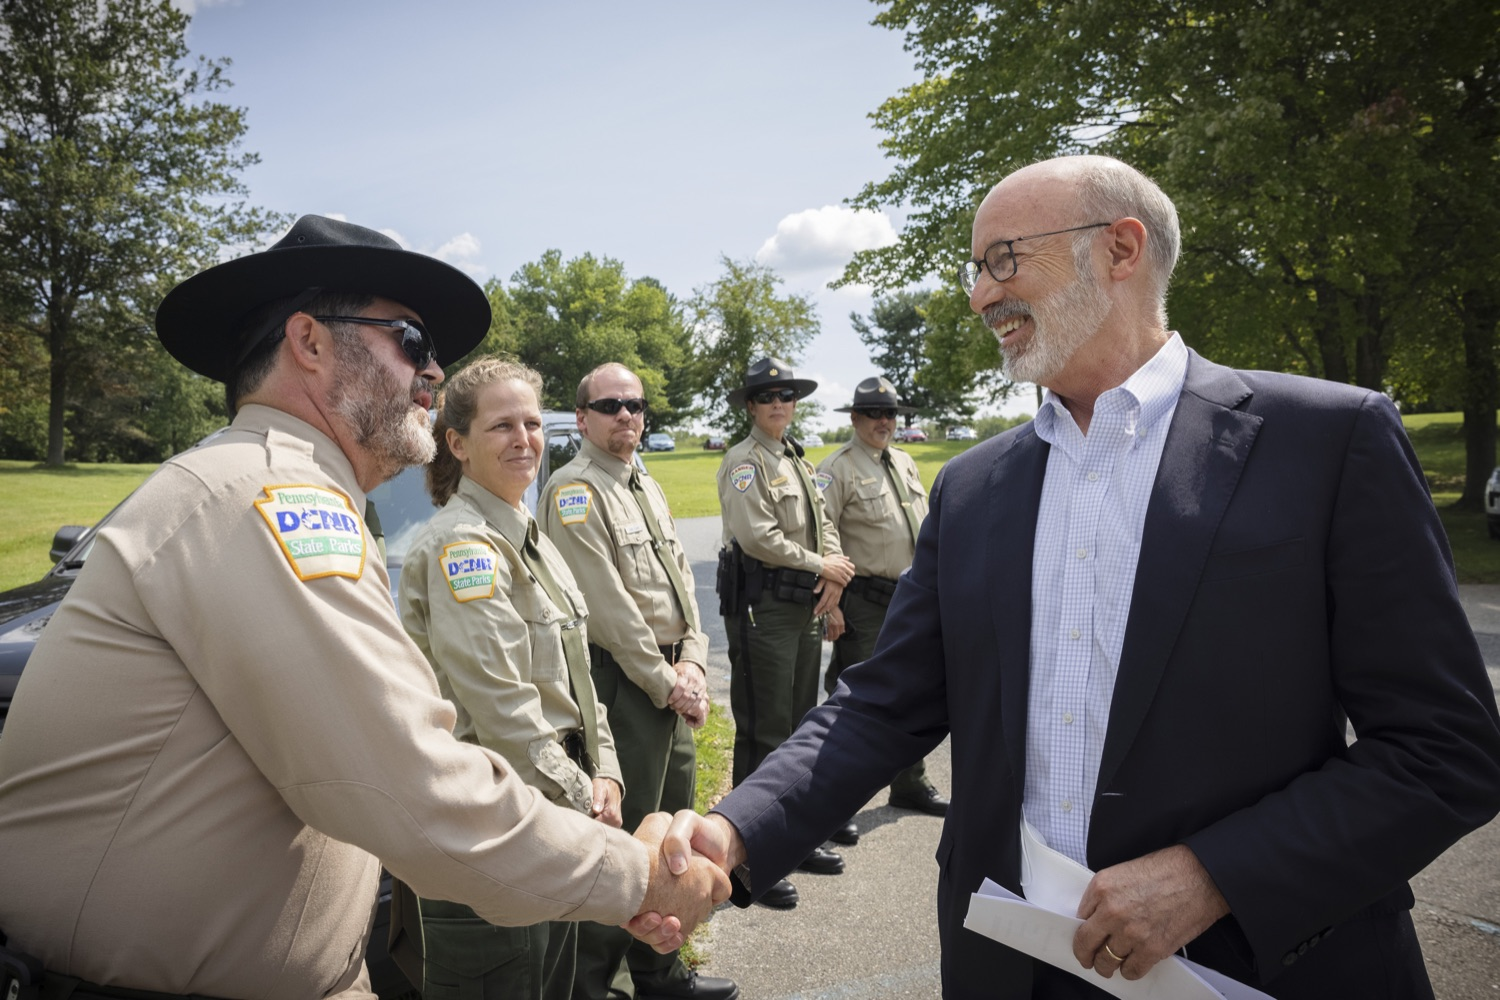 """<a href=""""https://filesource.wostreaming.net/commonwealthofpa/photo/19111_gov_parkVaccines_dz_004.jpg"""" target=""""_blank"""">⇣Download Photo<br></a>Pennsylvania Governor Tom Wolf greeting Michael Kutzmonich of the Pennsylvania DCNR.Governor Tom Wolf today announced that the Department of Health (DOH) and Department of Conservation and Natural Resources (DCNR) are partnering to hold COVID-19 vaccine clinics at five state parks across the commonwealth to help expand access to the COVID-19 vaccine.  Harrisburg, PA -- September 10, 2021"""